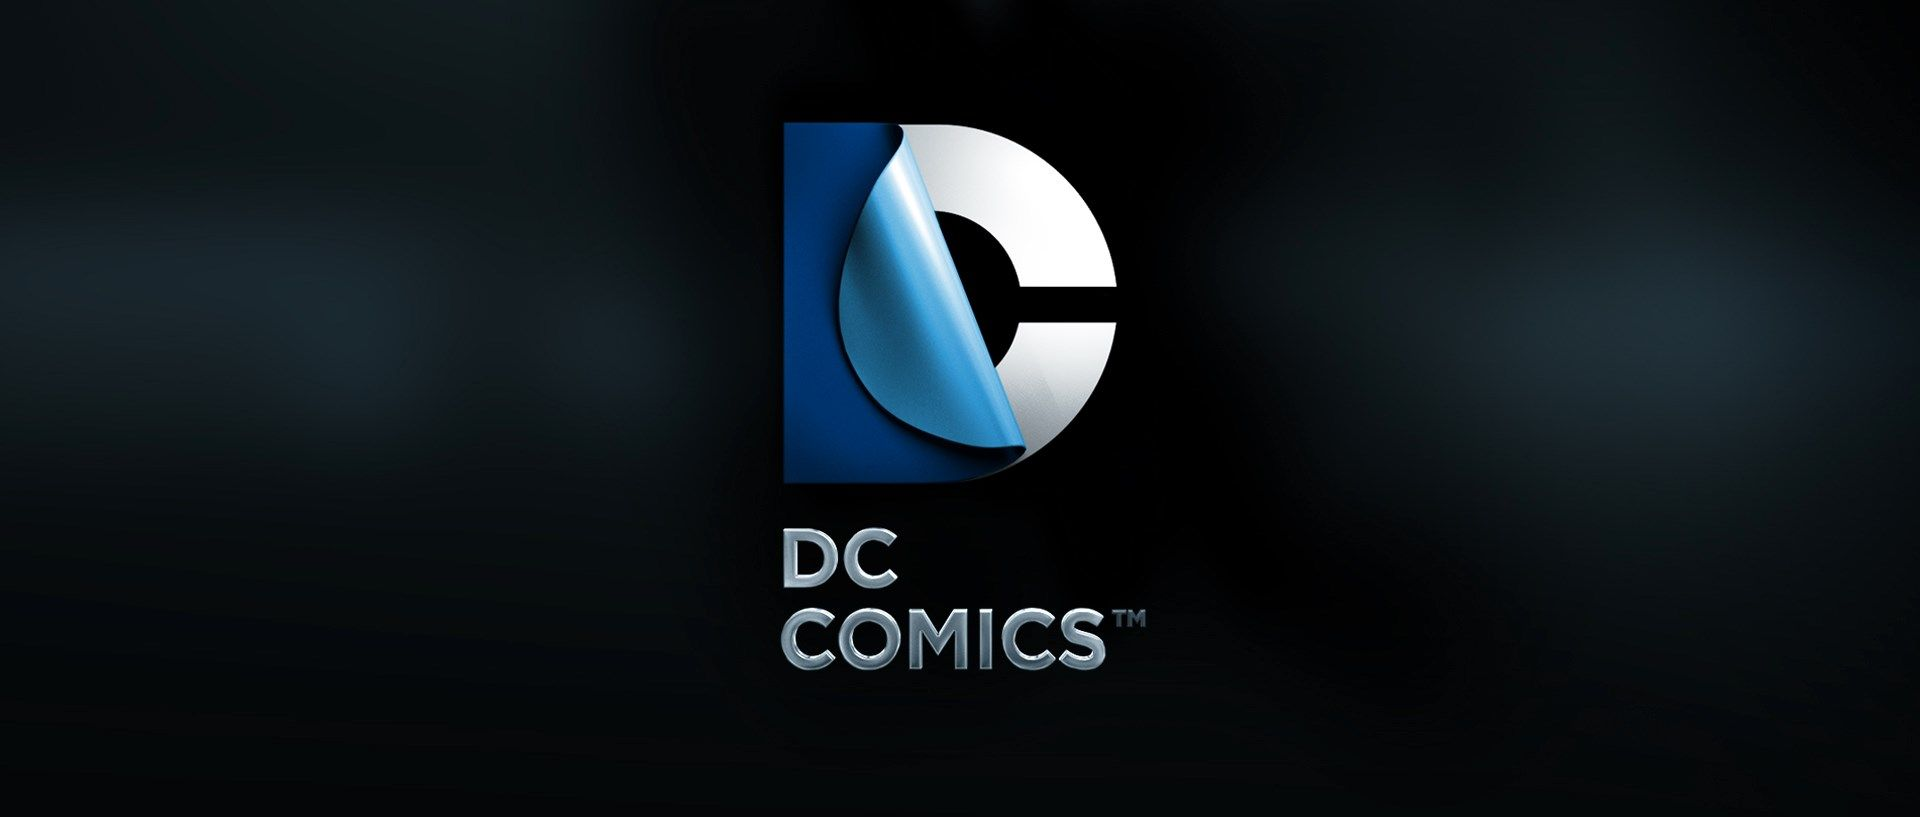 Dc comics full hd wallpaper photo hueputalo pinterest hd dc comics full hd wallpaper photo voltagebd Images